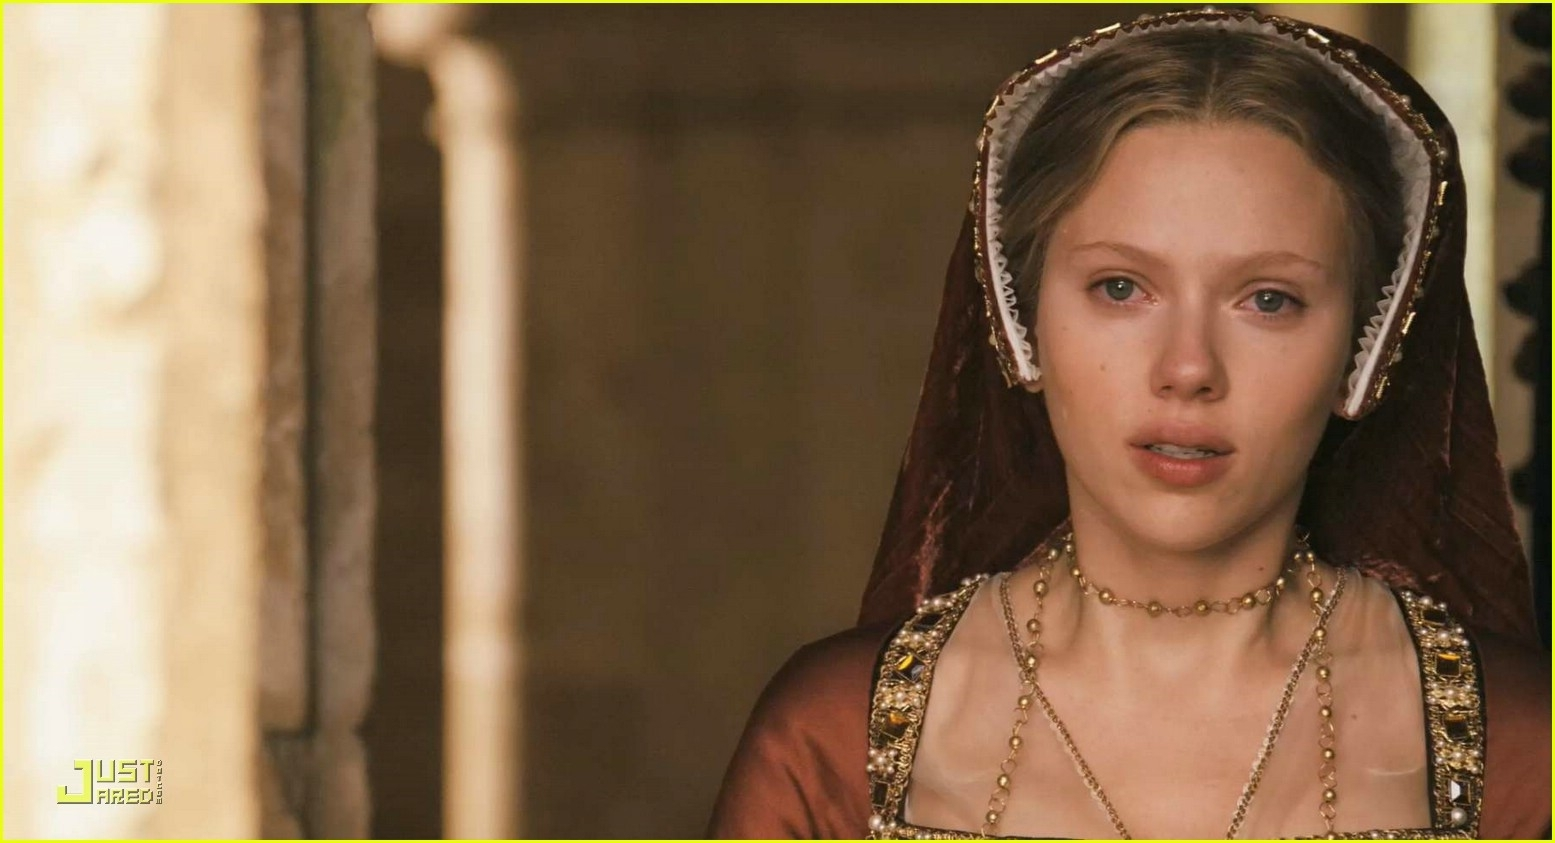 the other boylen girl Watch the other boleyn girl movie trailer and get the latest cast info, photos, movie review and more on tvguidecom.